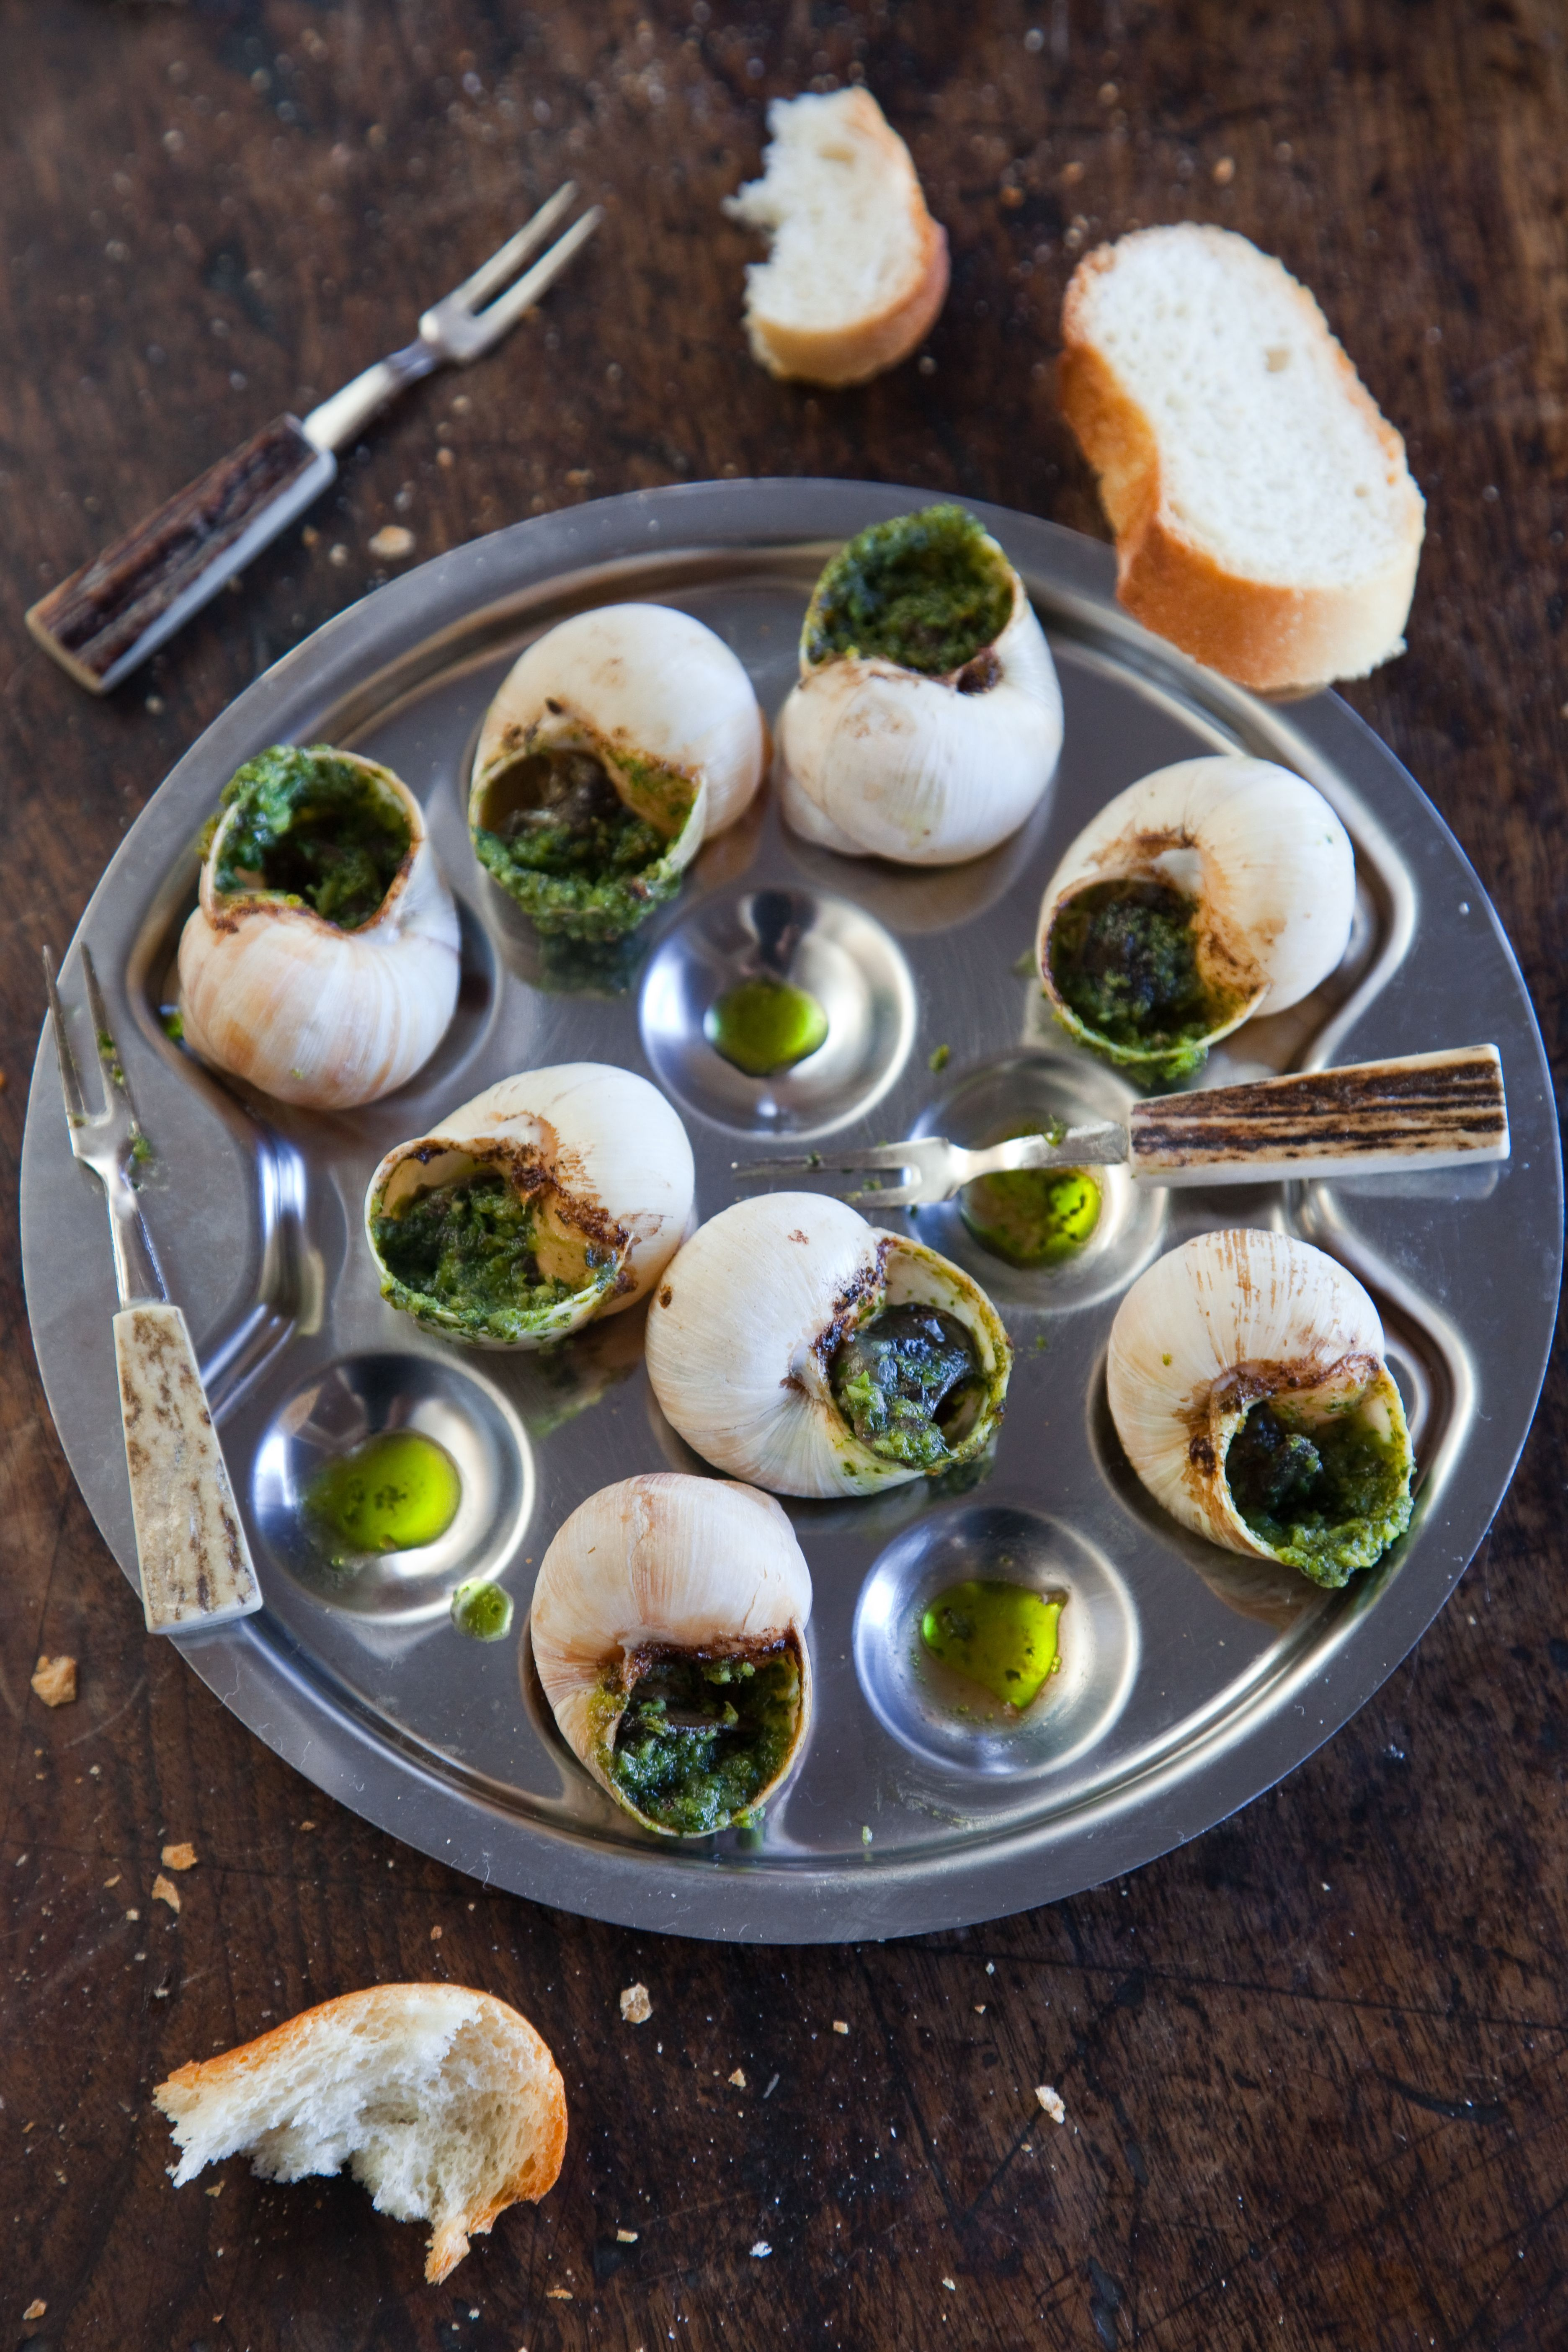 Recipe: Escargot de Bourgogne (Burgundy snails) is a